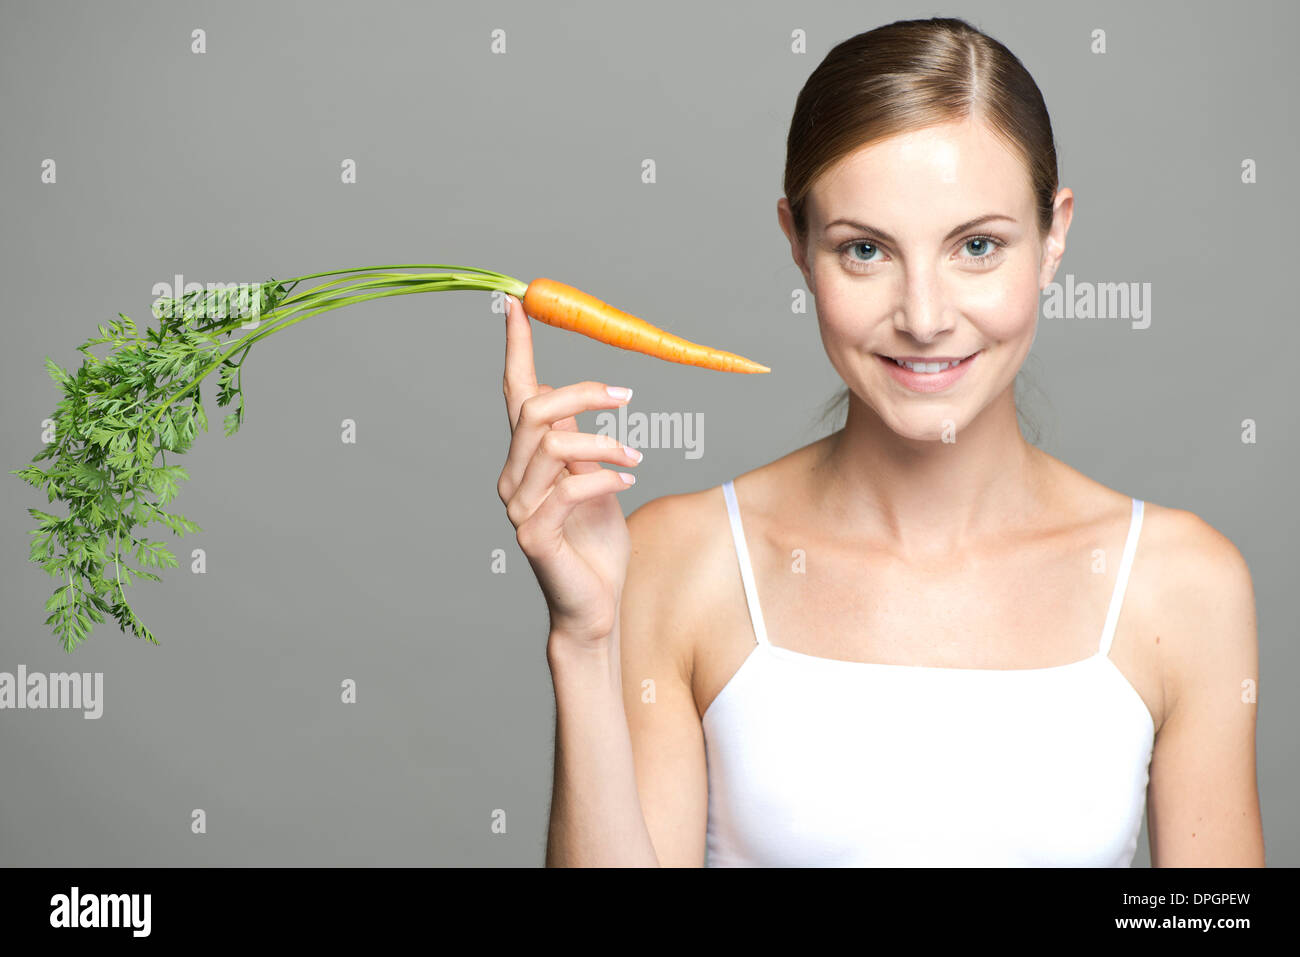 Young woman balancing carrot on fingertip - Stock Image